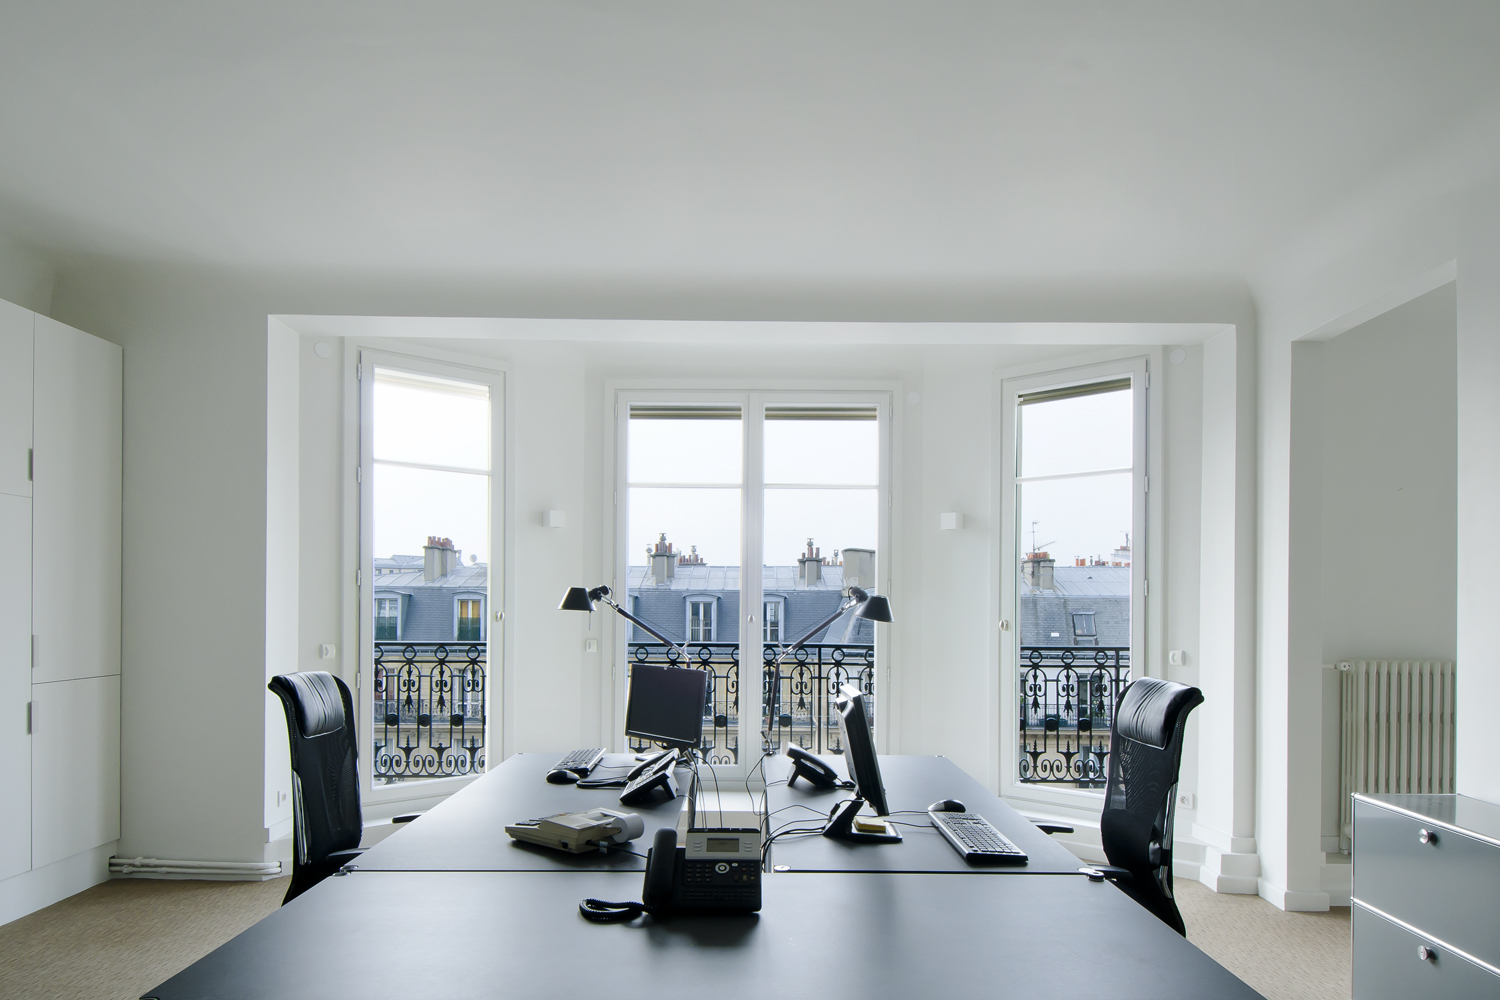 Agence architectes d 39 int rieur paristexier et soulas for Architectes d interieur